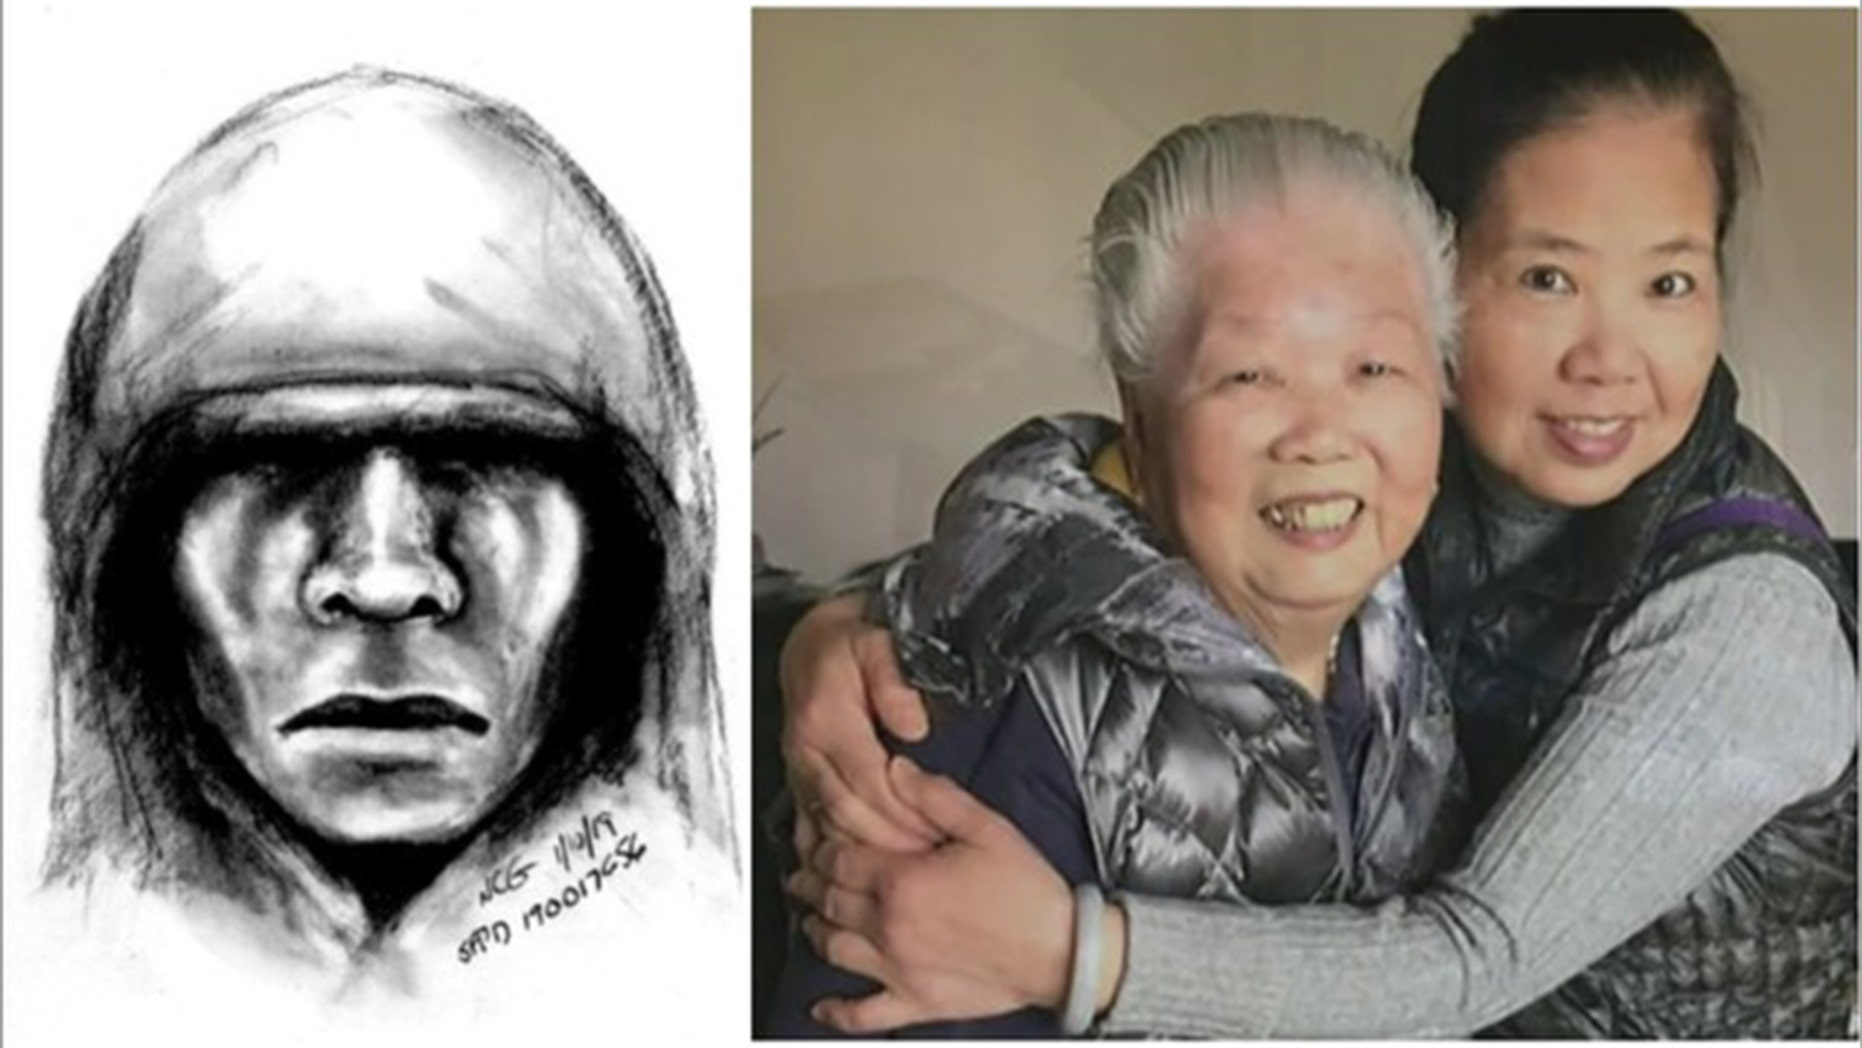 Authorities arrested a suspect in the brutal attack of Yik Oihuang, 88, which happened earlier this month.